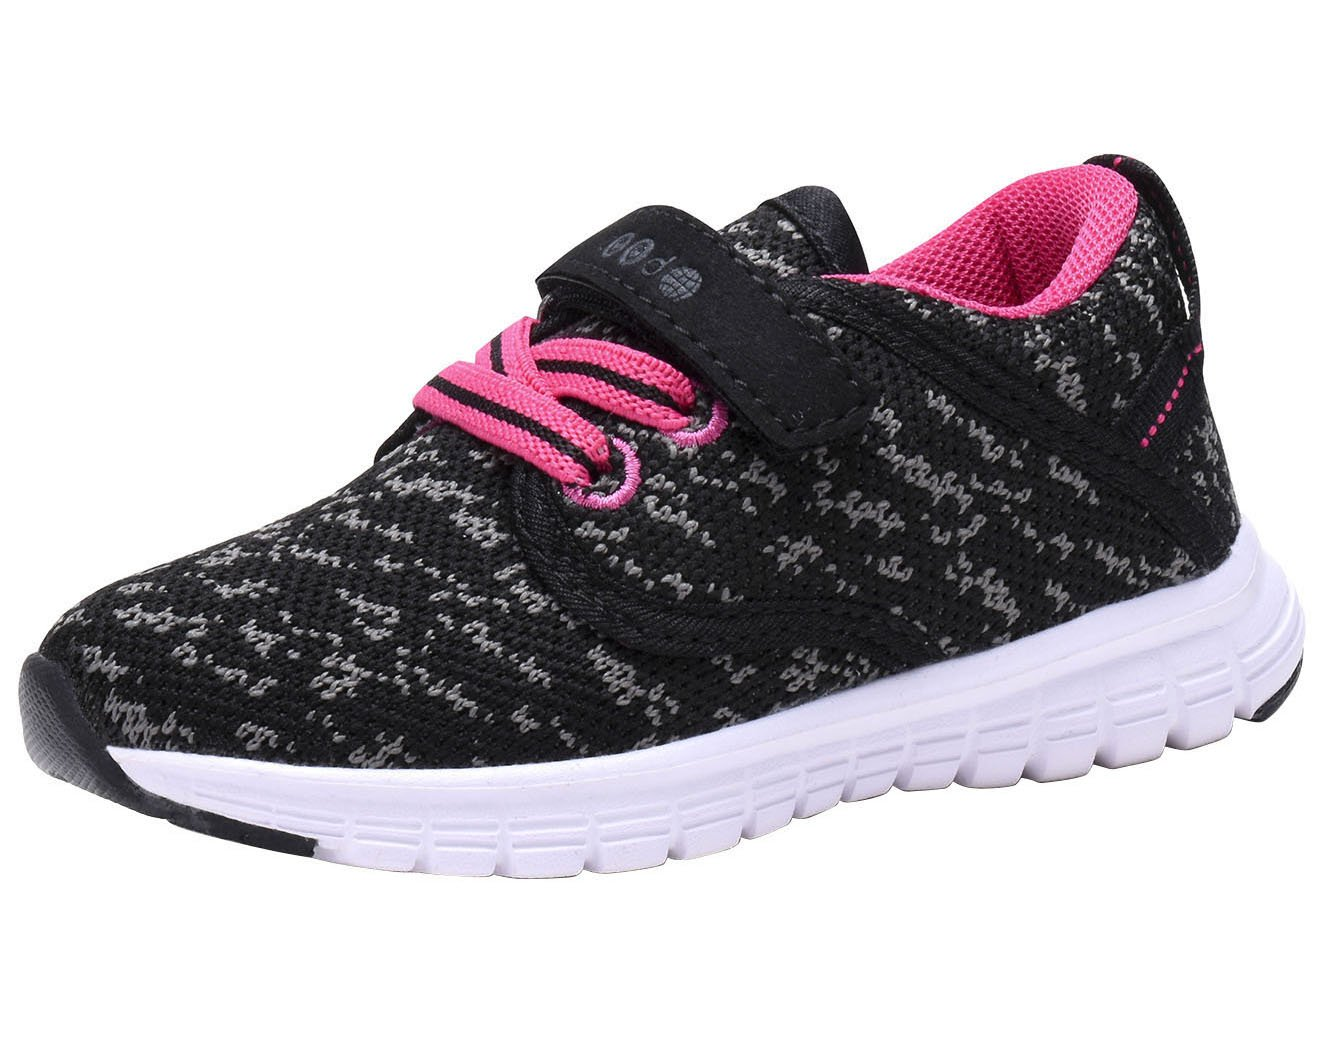 COODO CD3001 Toddler's Lightweight Sneakers Girls Casual Running Shoes New Black/Fuchsia-8